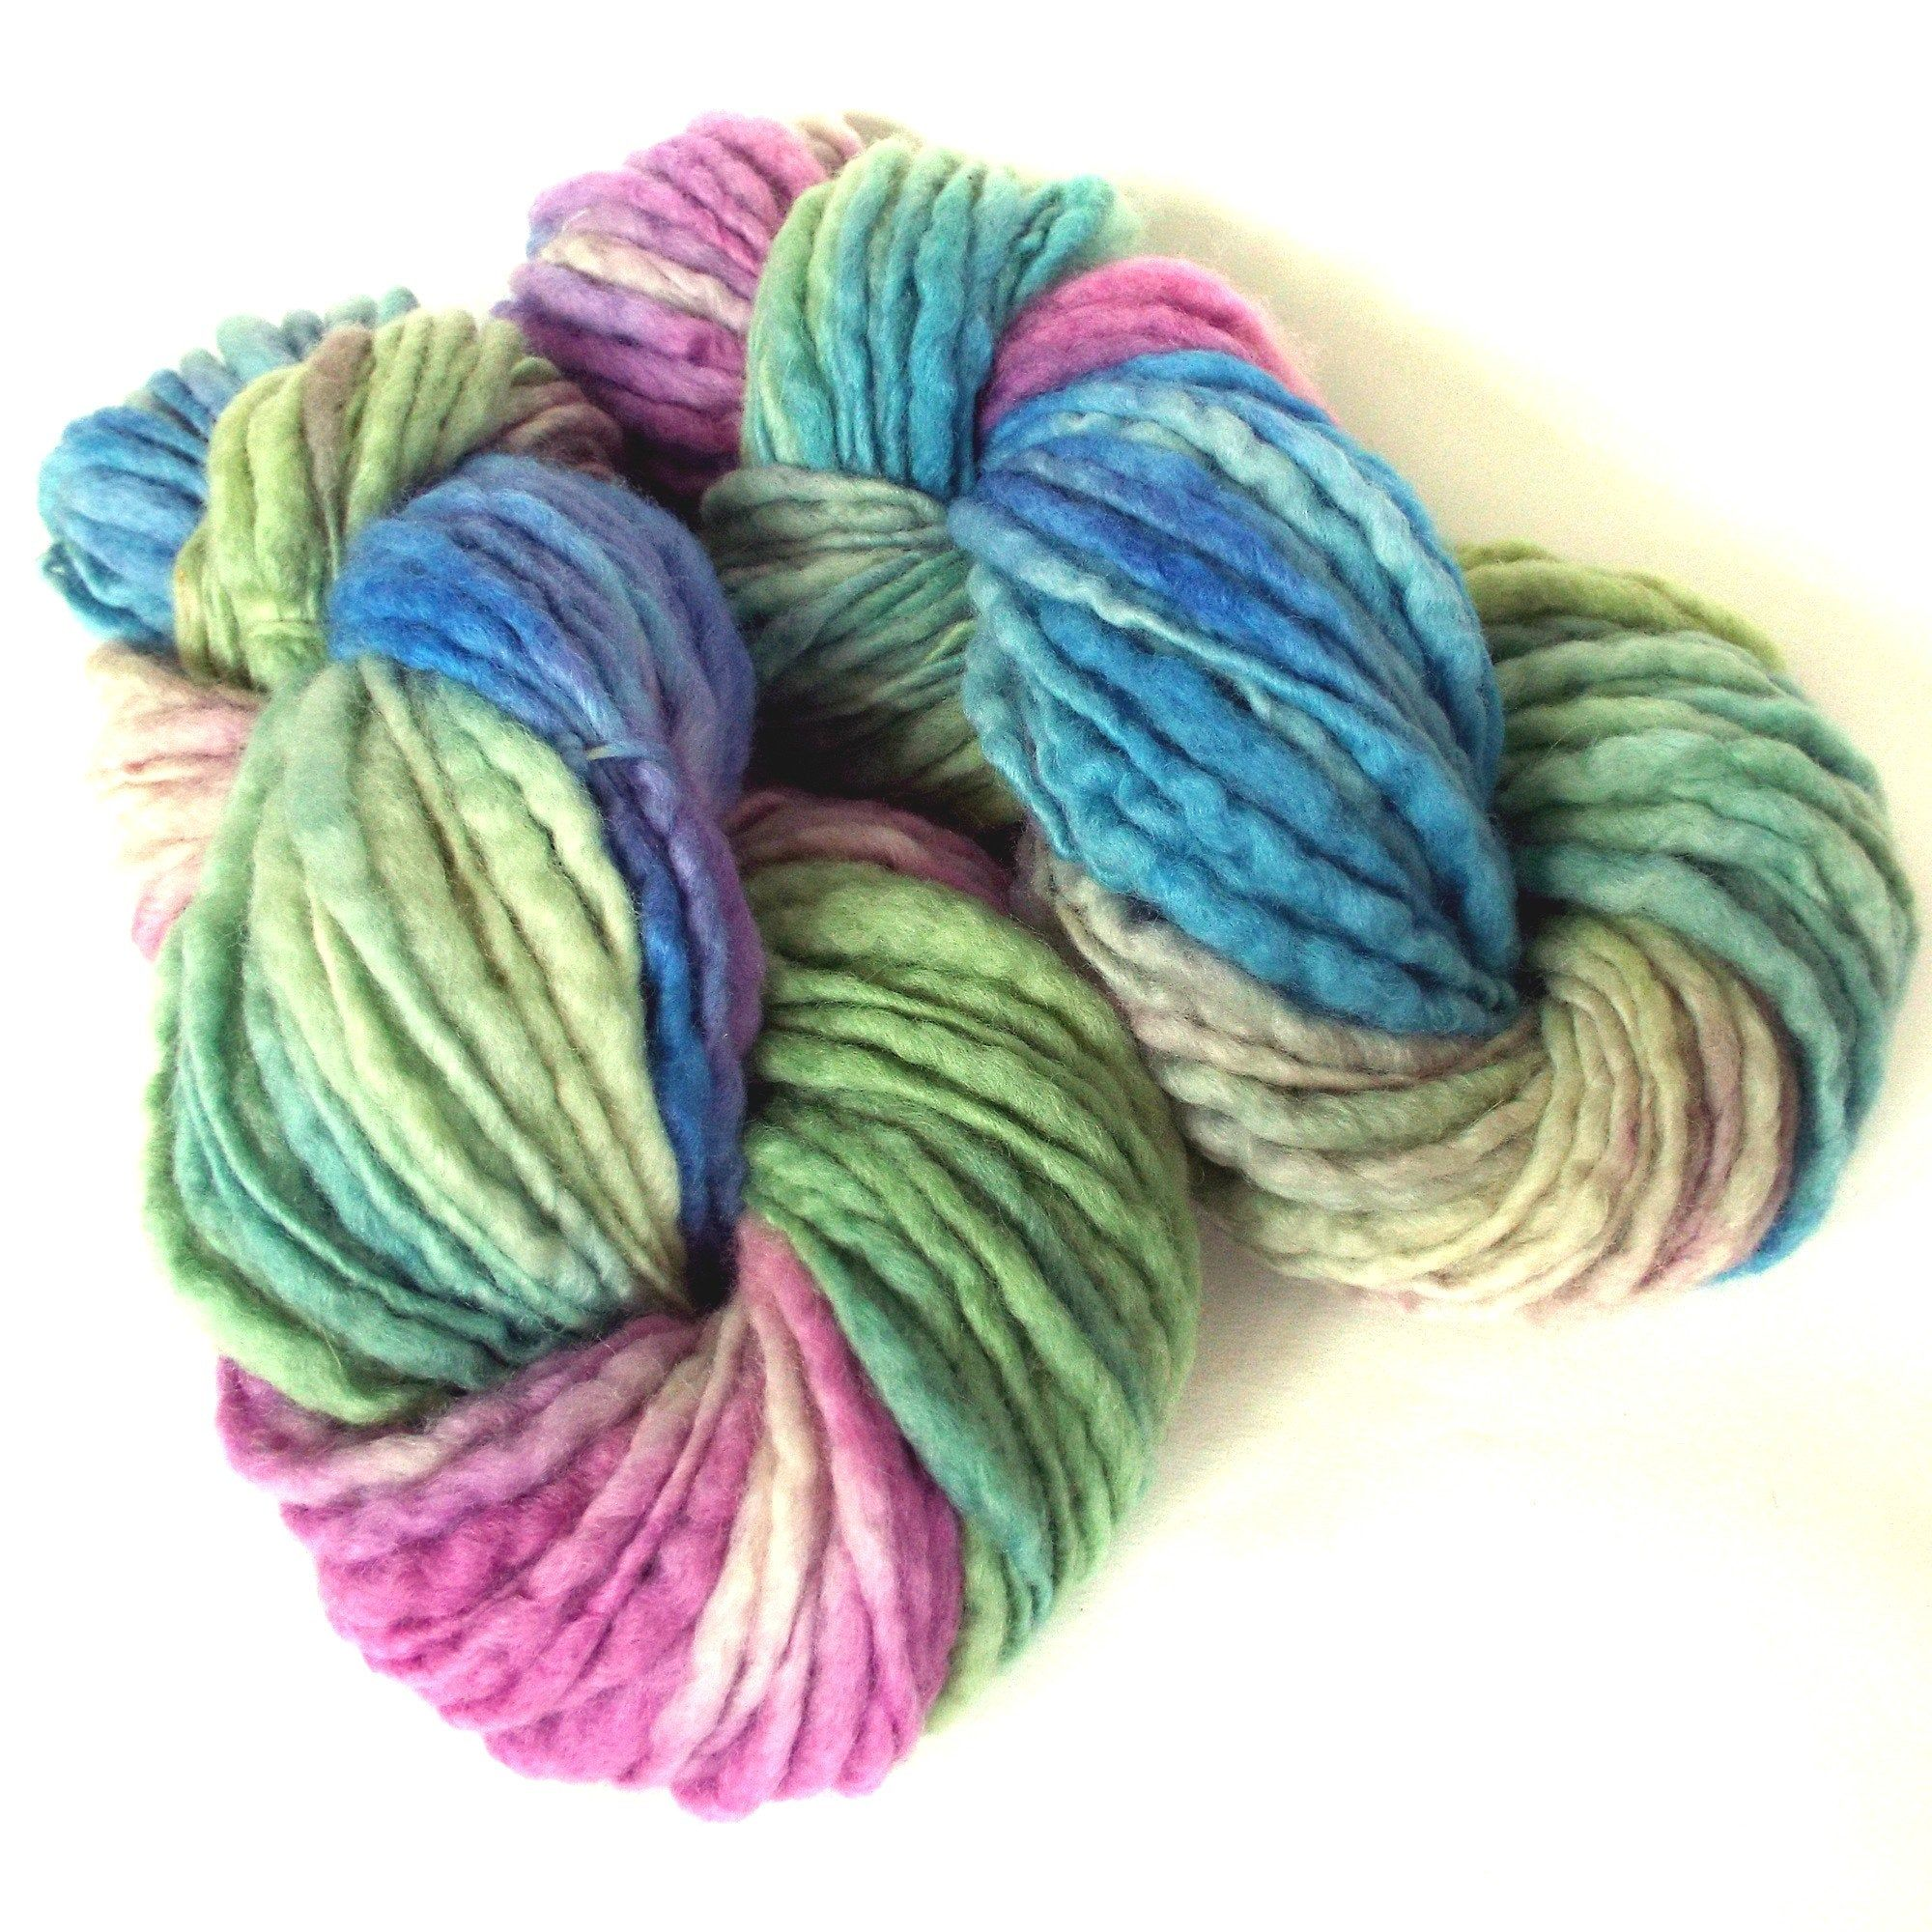 Chunky Yarn, Hand Spun Yarn, Art Yarn, Handspun Art Yarn, Thick Thin, Chunky Knit Yarn, British Wool #HandDyedYarn #HandspunYarn #HanddyedYarn #ArtYarn #HandSpunYarn #ChunkyYarn #ChunkyWool #BulkyYarn #ThickThinYarn #HandspunWool